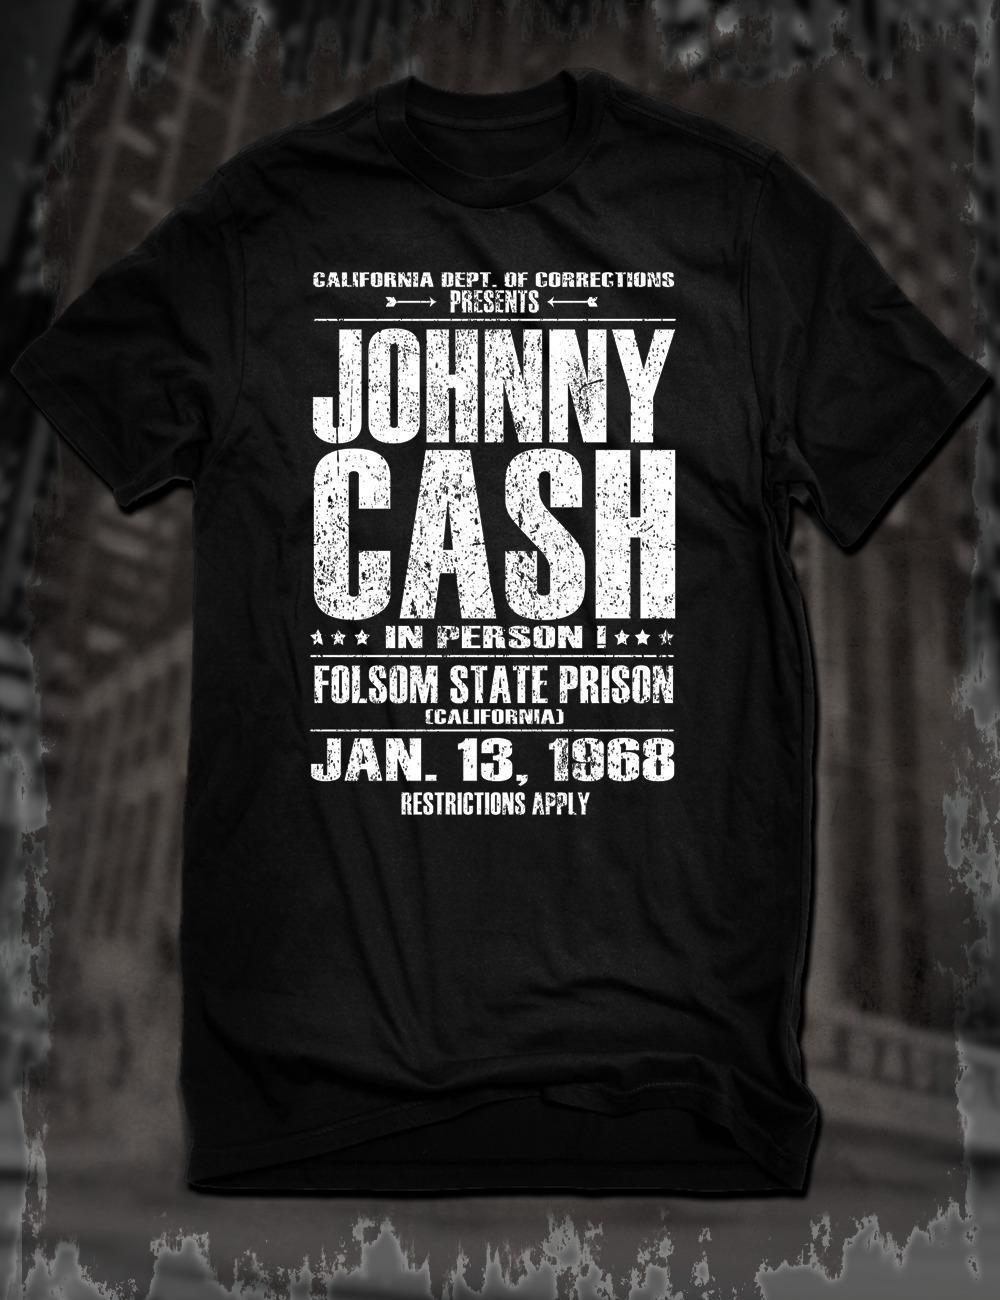 19d5f503d New Black Johnny Cash Live At Folsom Prison T Shirt Vintage Poster Country  Tee Neck T Shirts T Shirts Only From Jie53, $14.67  DHgate.Com